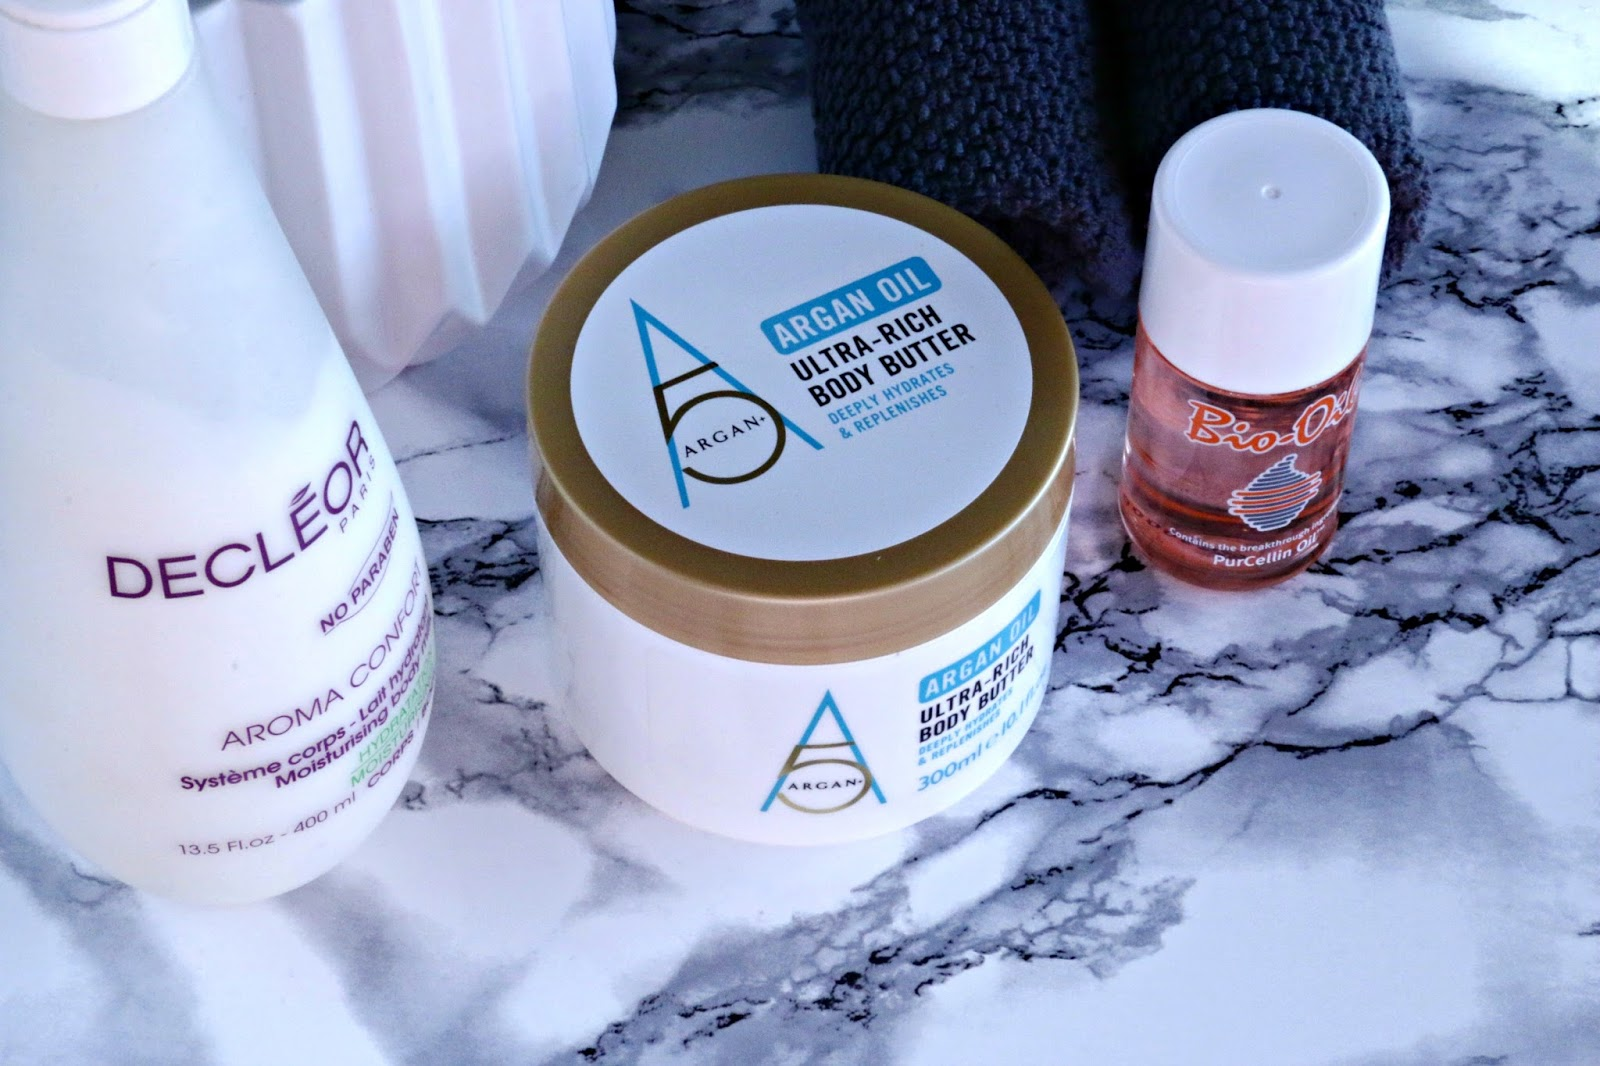 How To Choose Which Body Moisturiser Is Right For You featuring Decleor, Bio Oil and Argan+